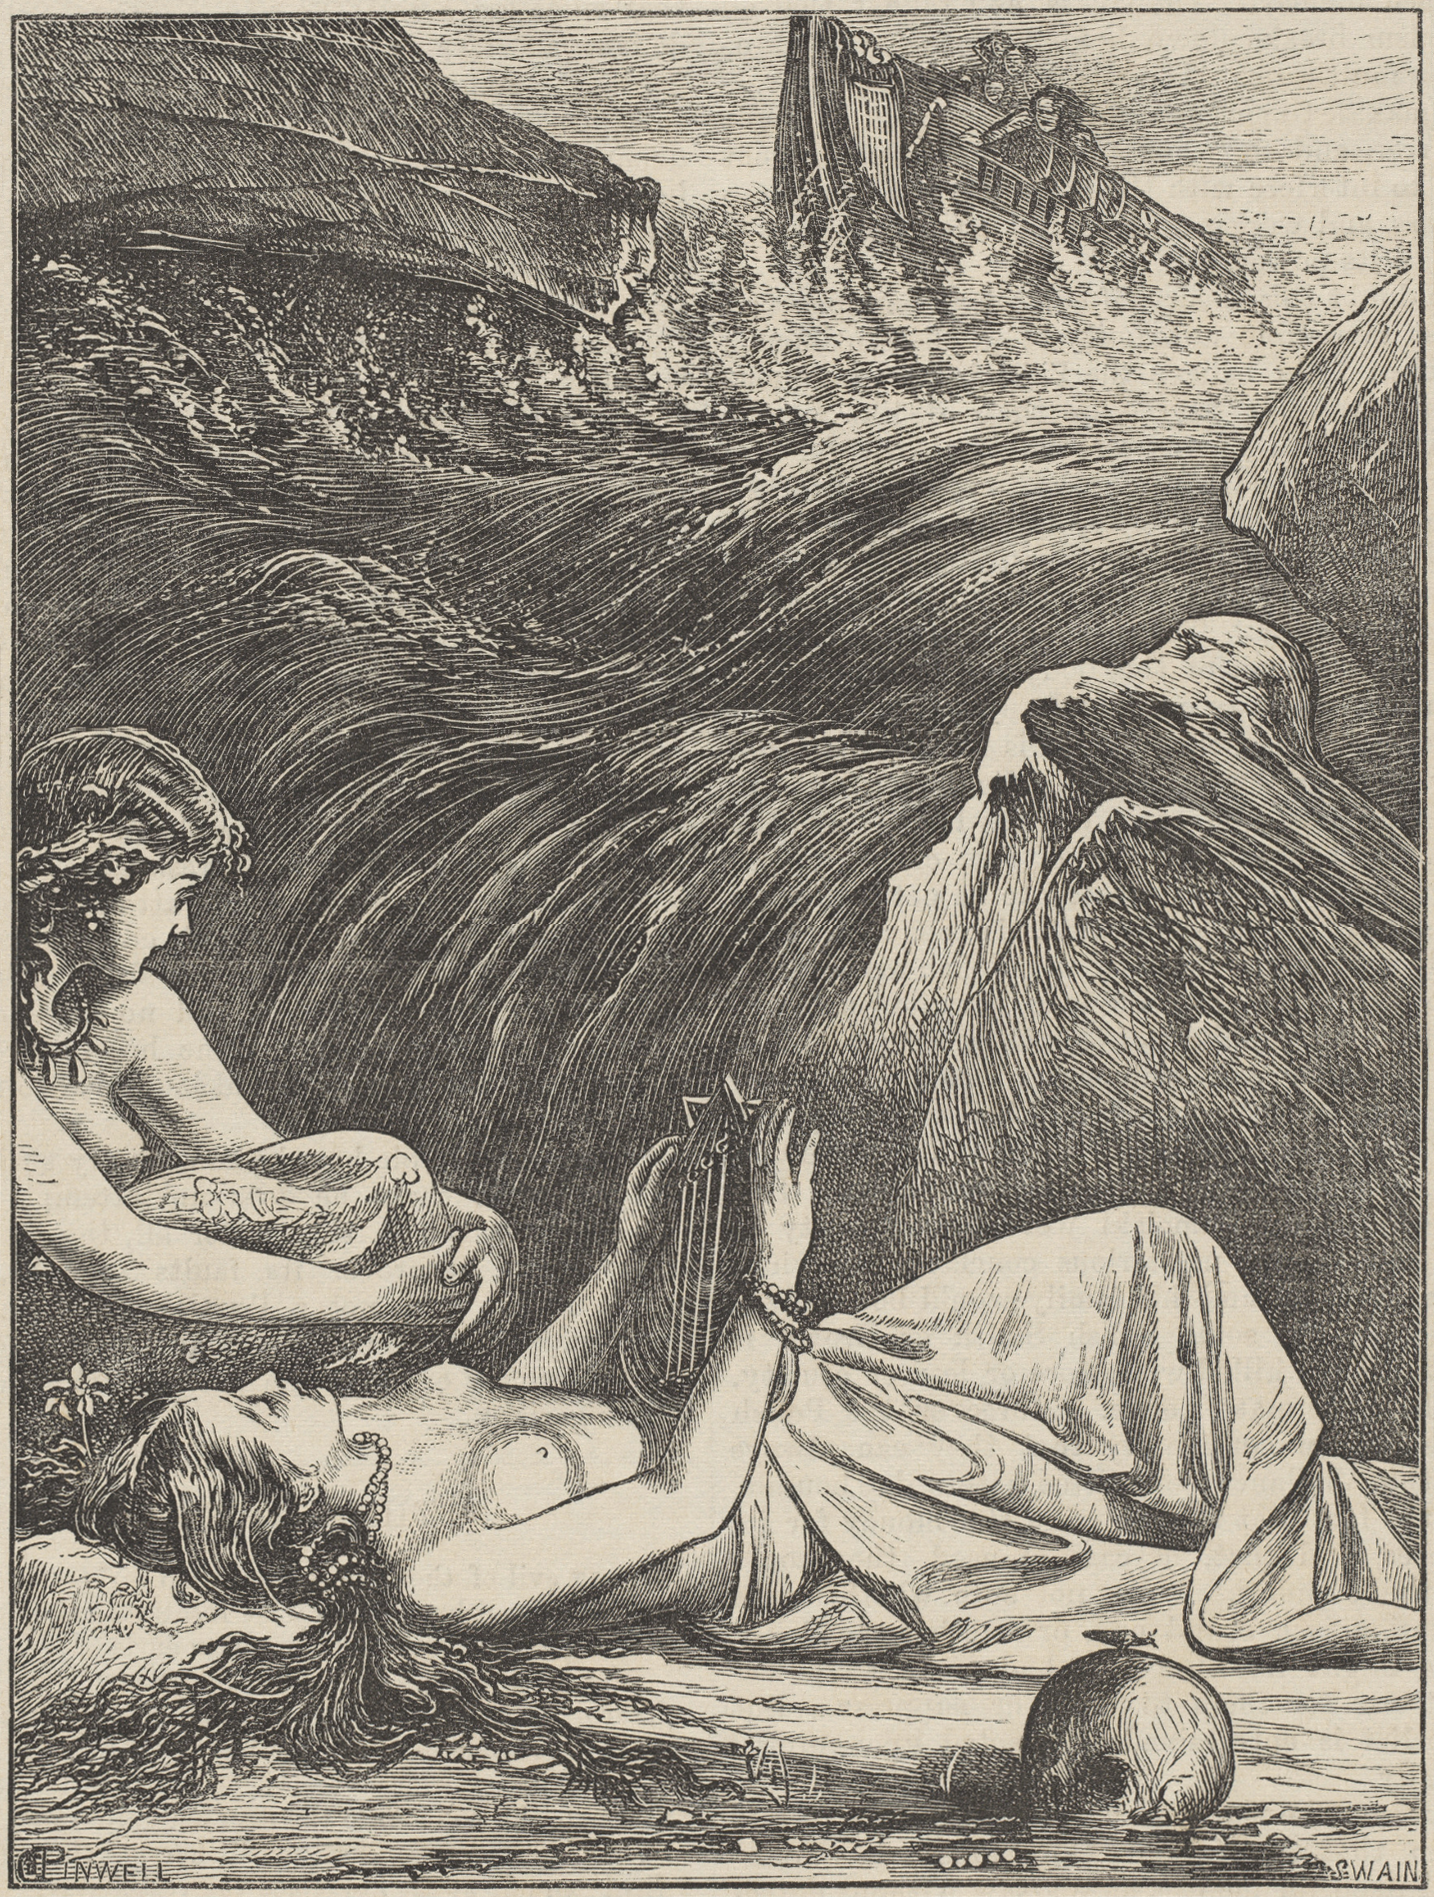 A more traditional Victorian illustration of the Greek siren.